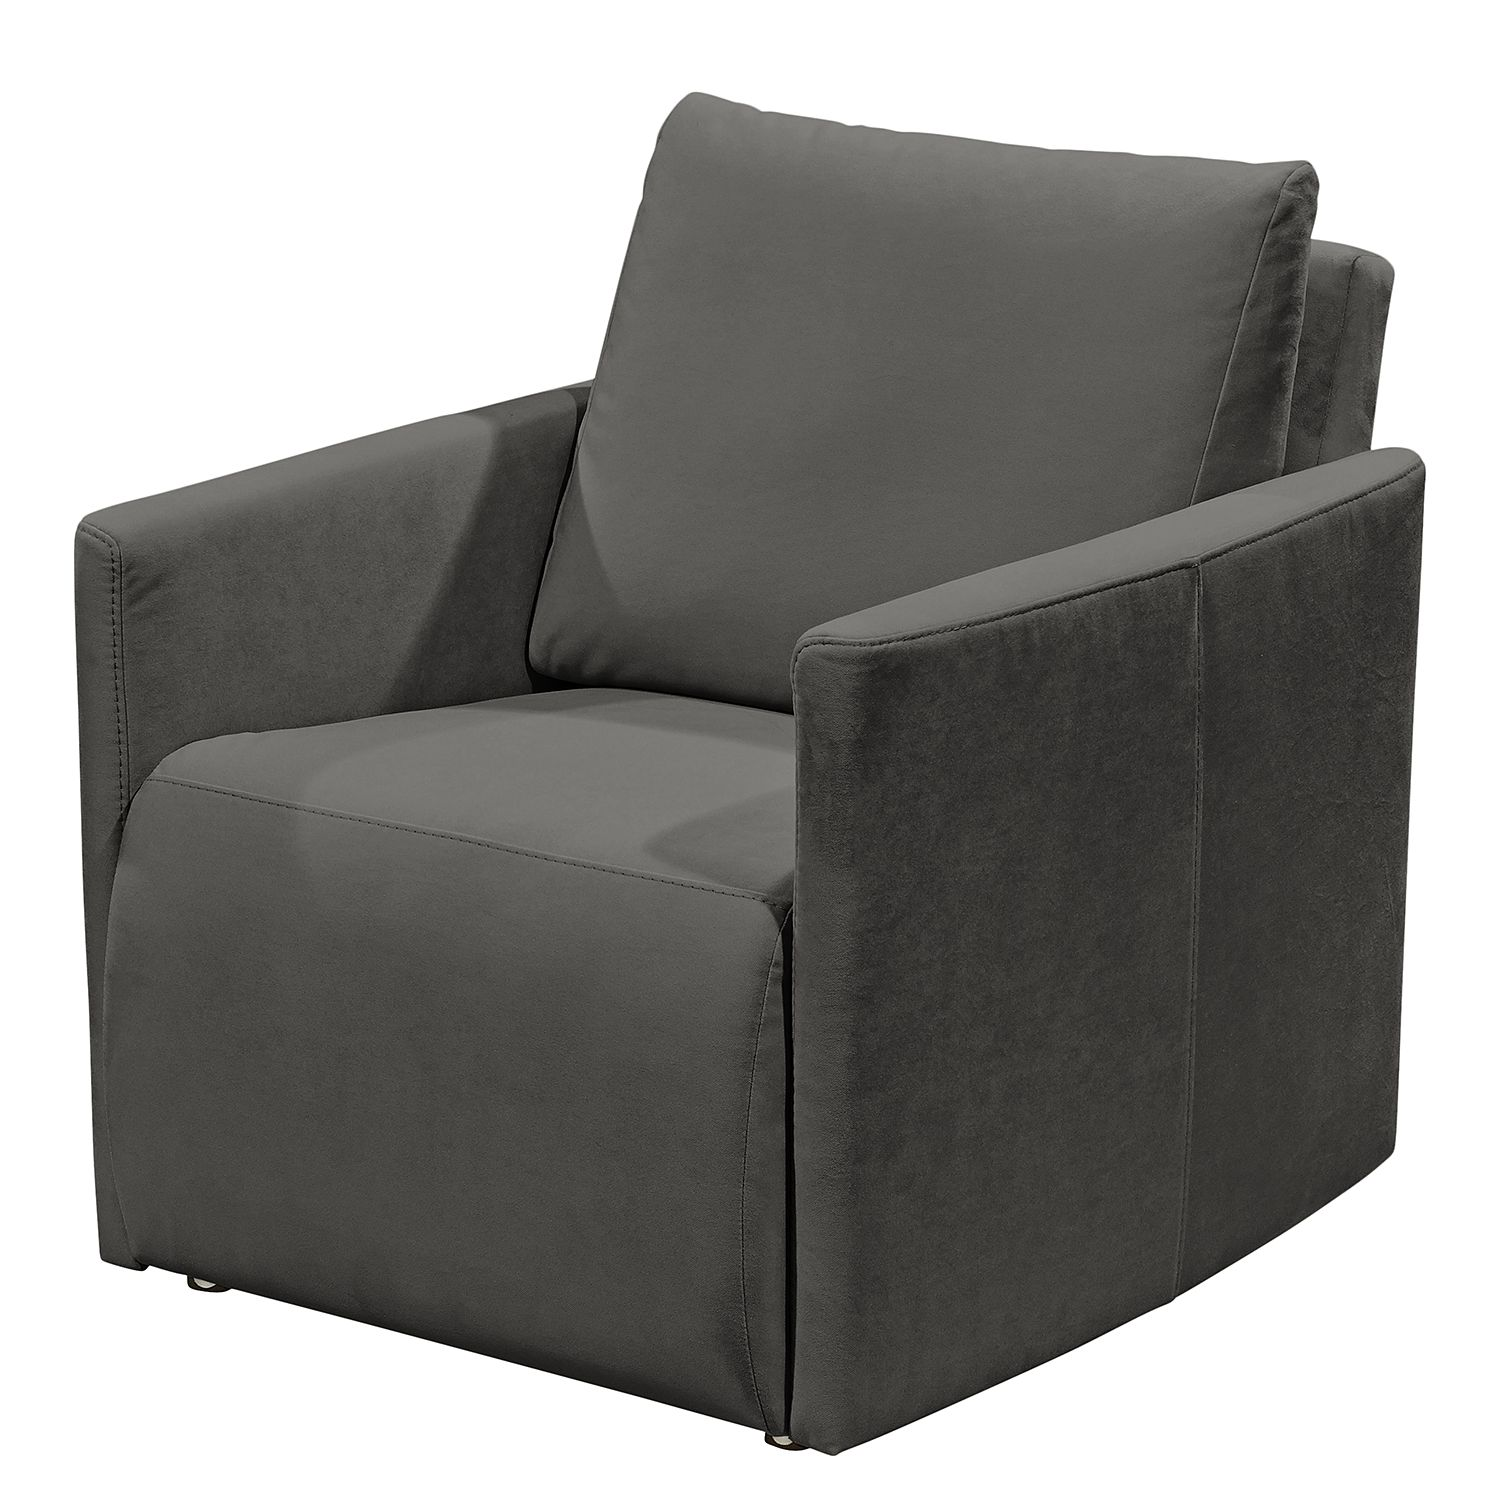 Fauteuil Tancon - Tissu - Anthracite, mooved